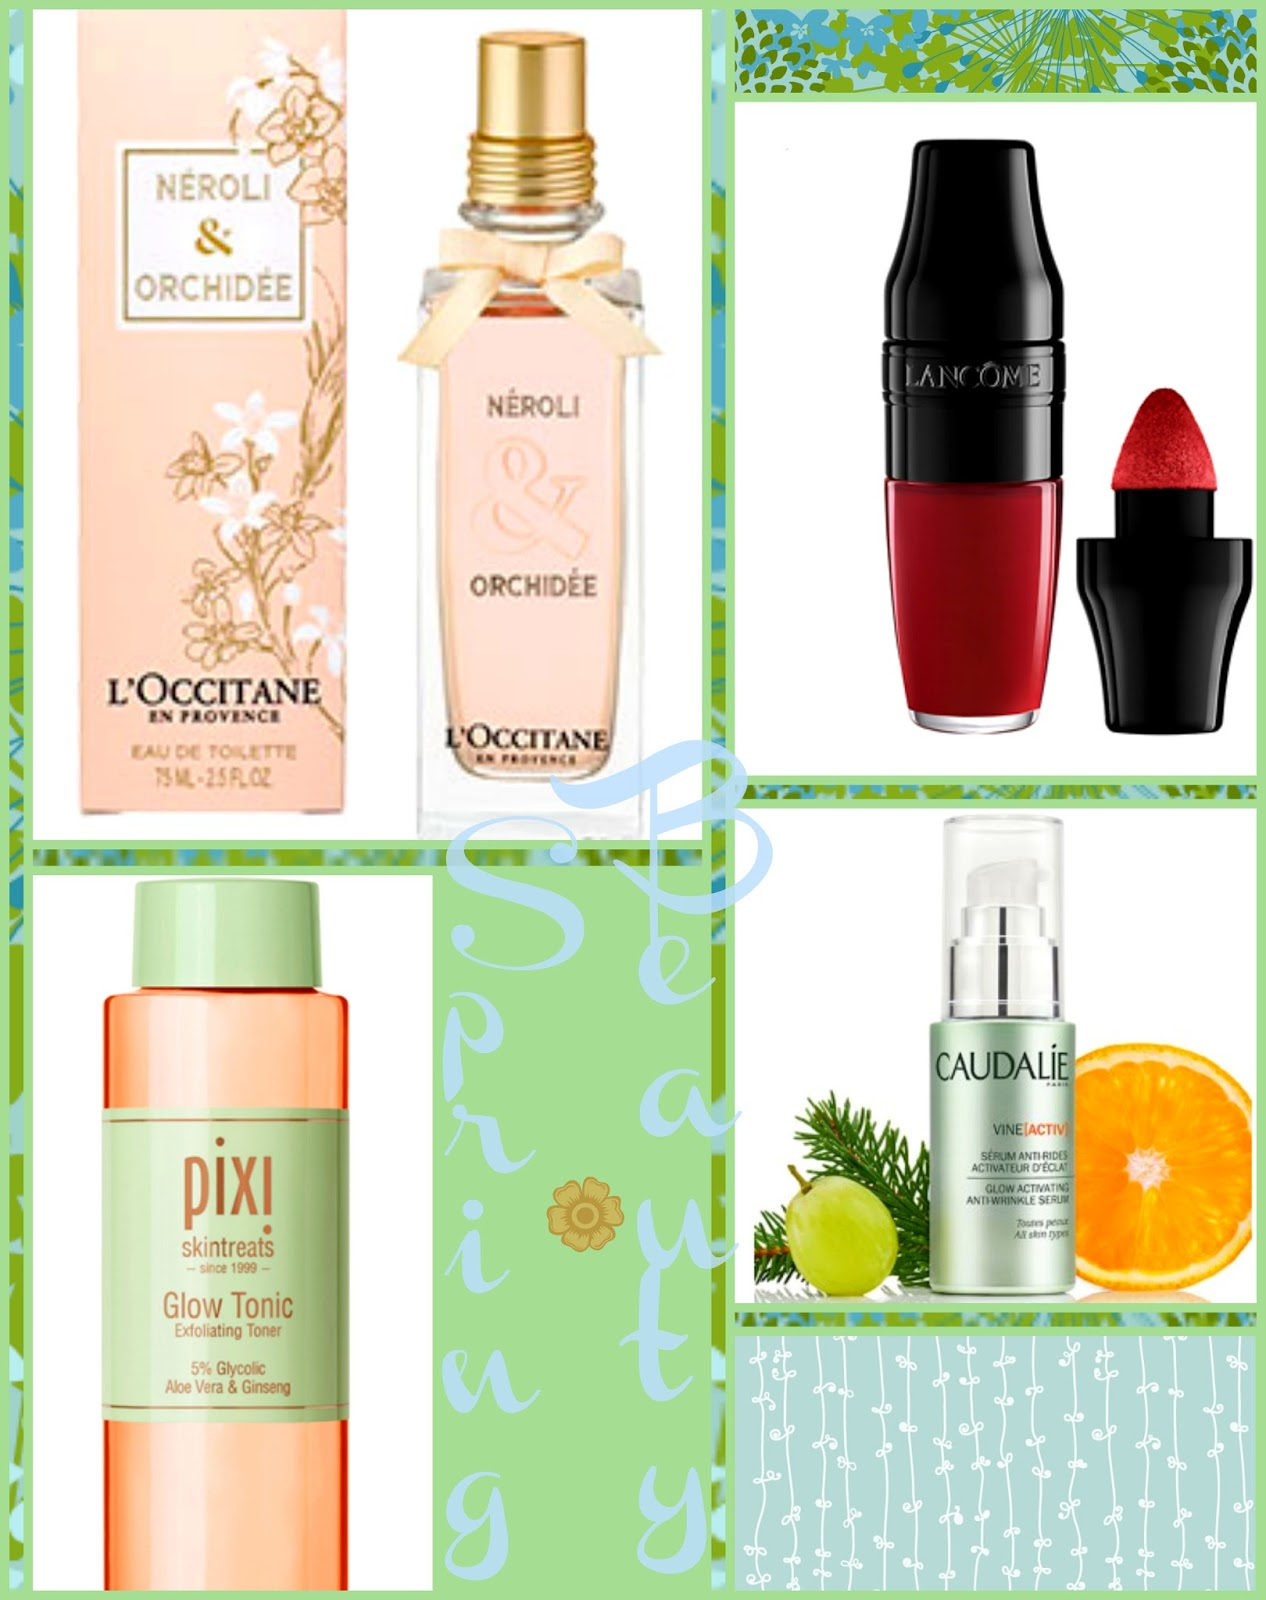 Spring Beauty Wishlist, L'Occitane fragrances, Spring Beauty, Caudalie Vine Active collection, caudalie beauty, lancome matte shaker, lancome beauty, pixi glow tonic, pixi beauty